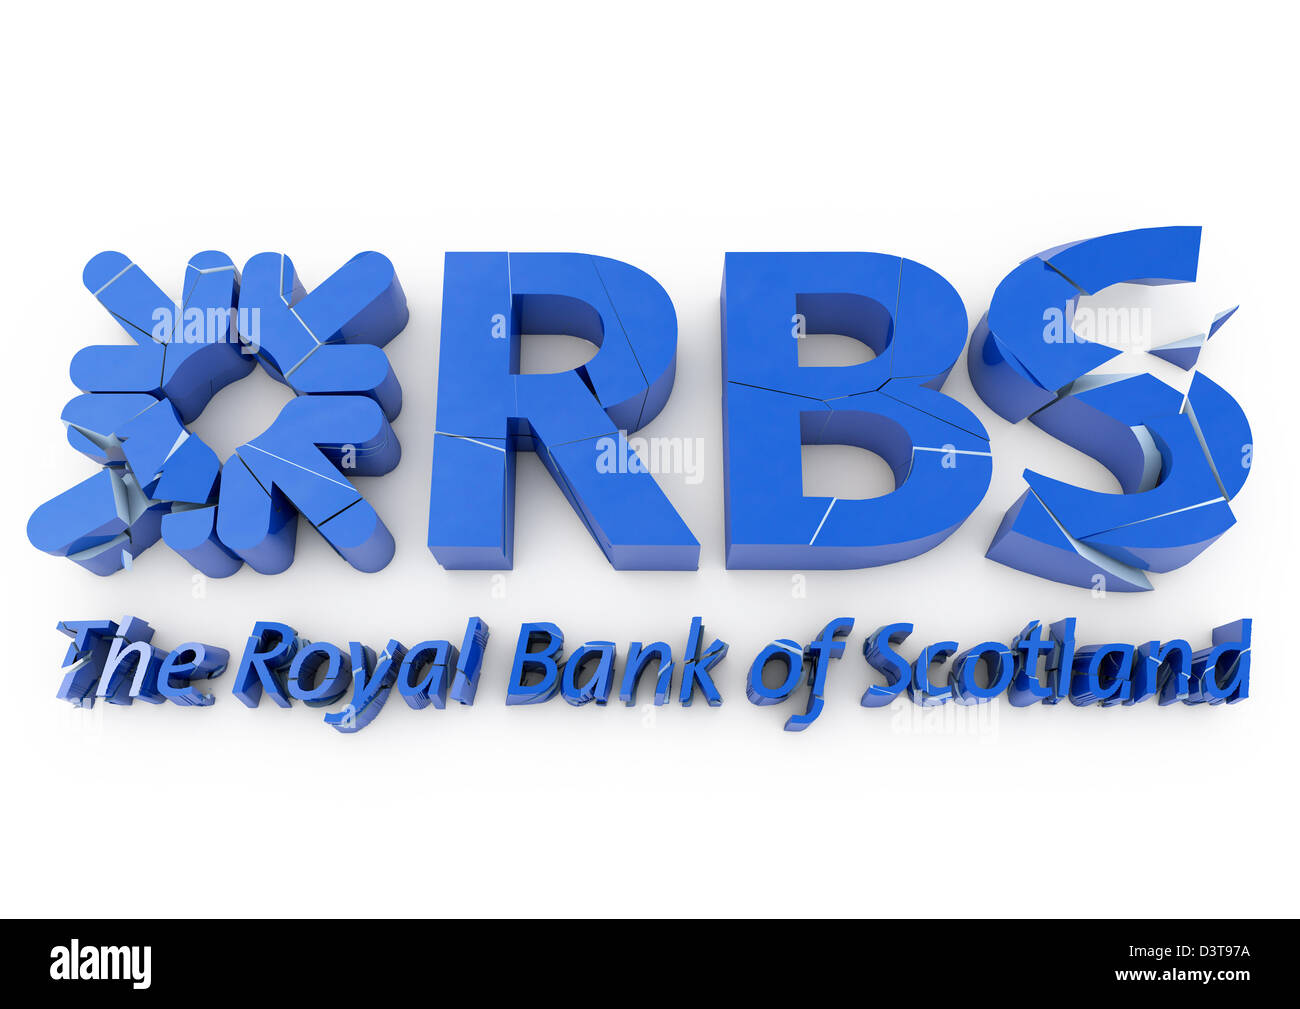 3D render of a cracking and crumbling RBS / Royal Bank of Scotland logo - Concept - White background - Stock Image